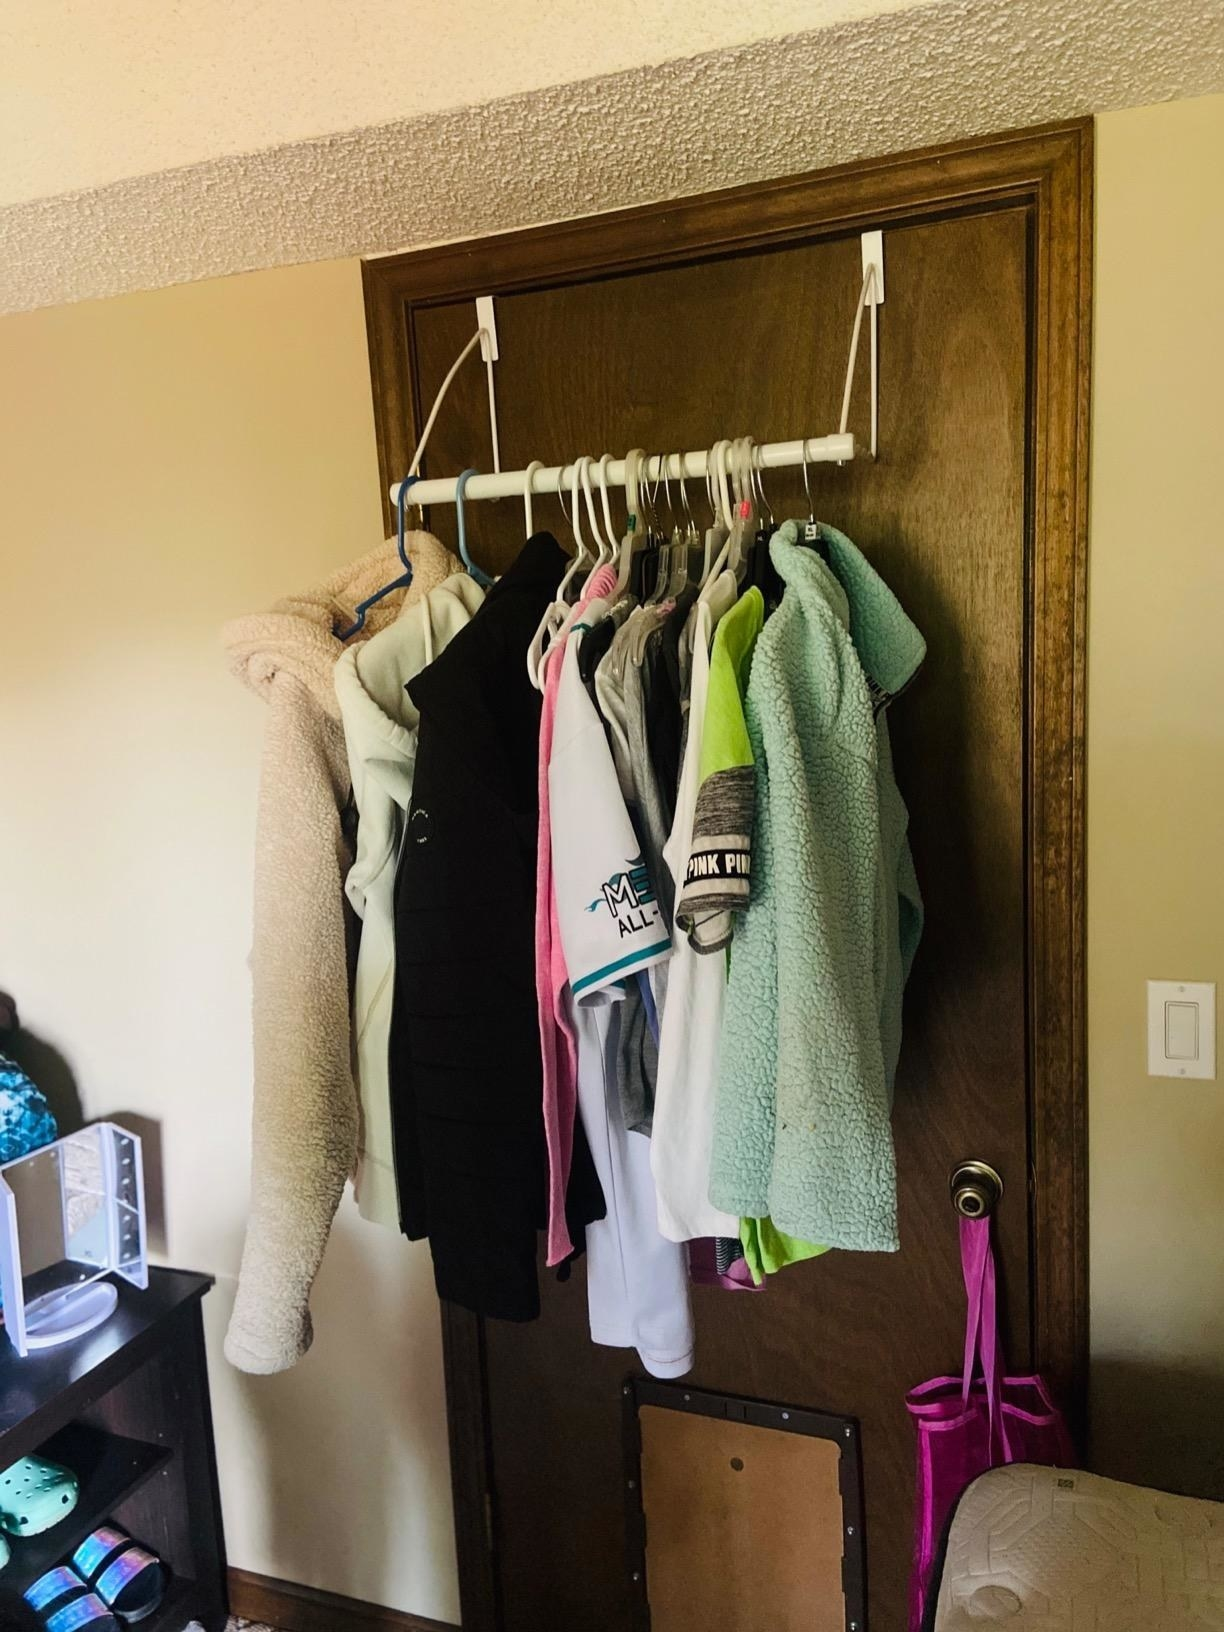 Reviewer pic of the white rack on the back of the door with clothes hanging from it.